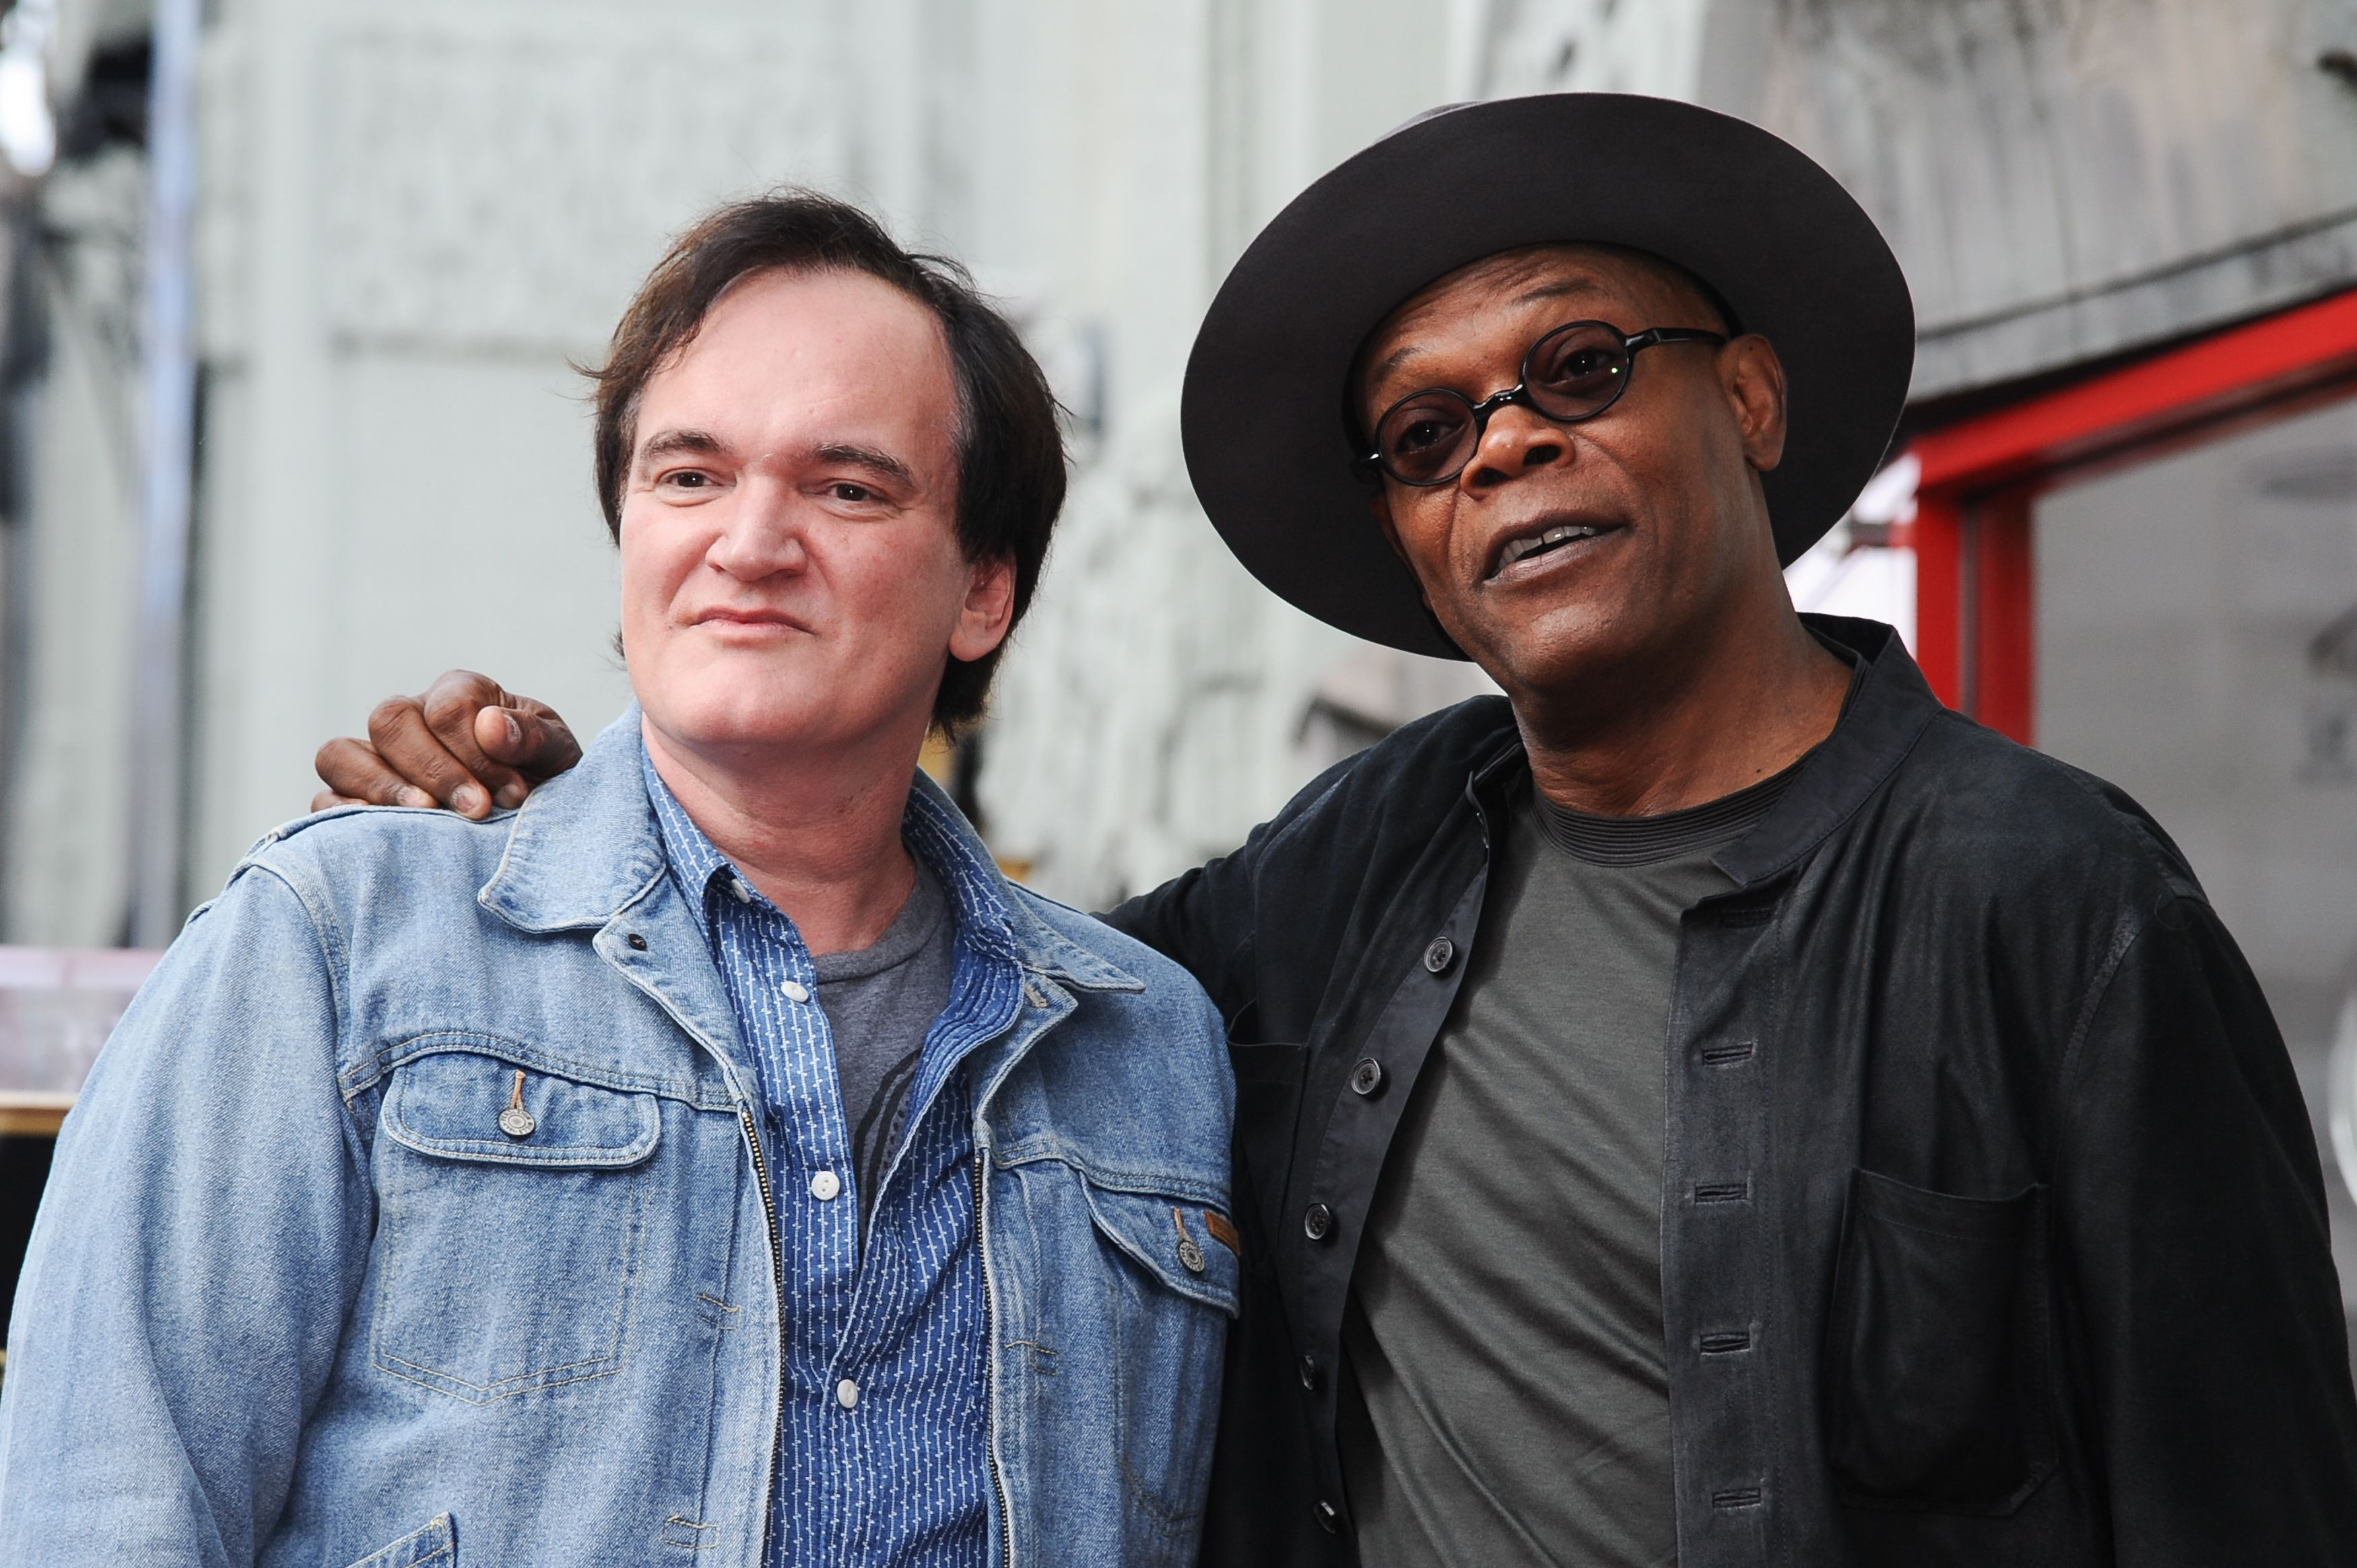 Samuel L. Jackson Critiques Backlash Against Quentin Tarantino's Use of N-Word